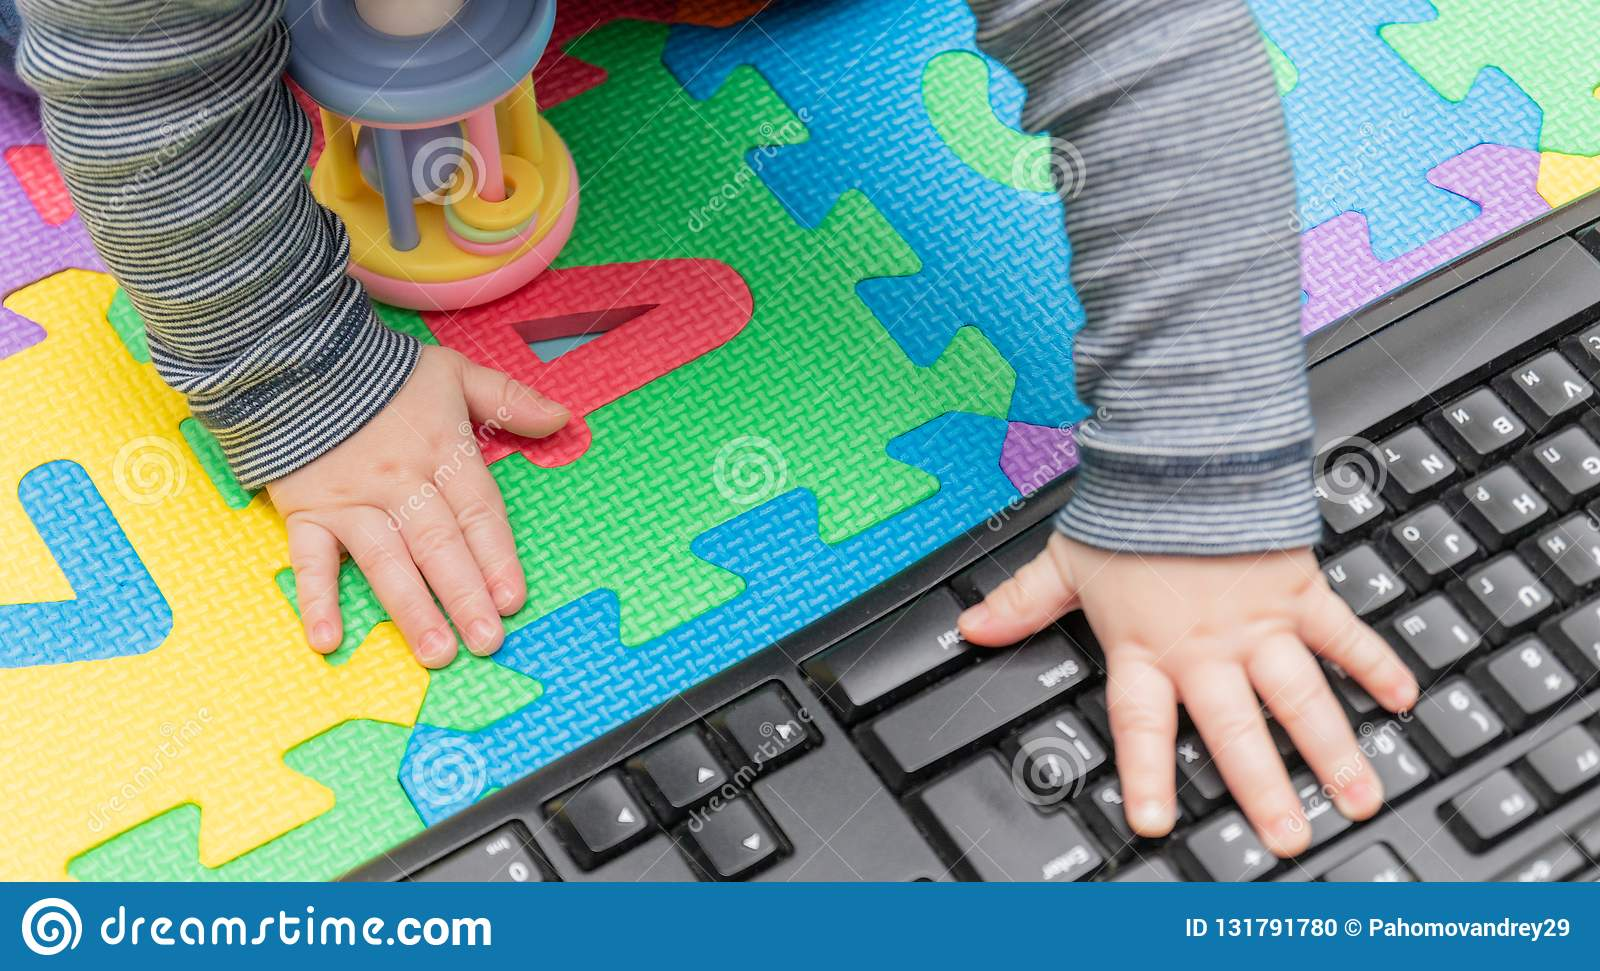 Little baby`s hands, on a computer mouse and keyboard - child development, getting familiar with technology since their early age